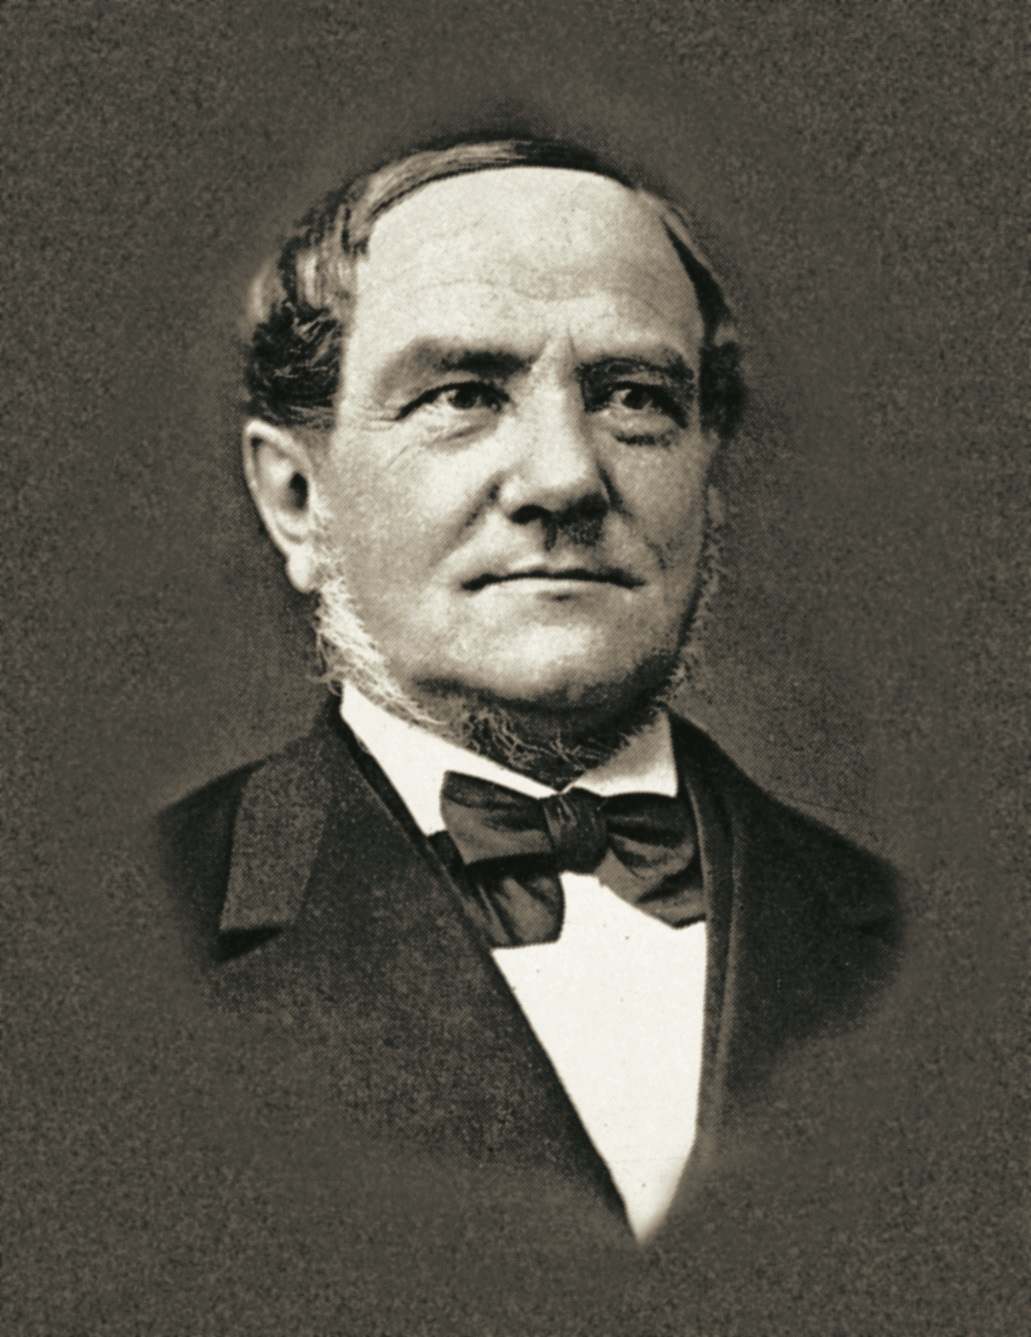 Historic profile shot of Victor von Bruns